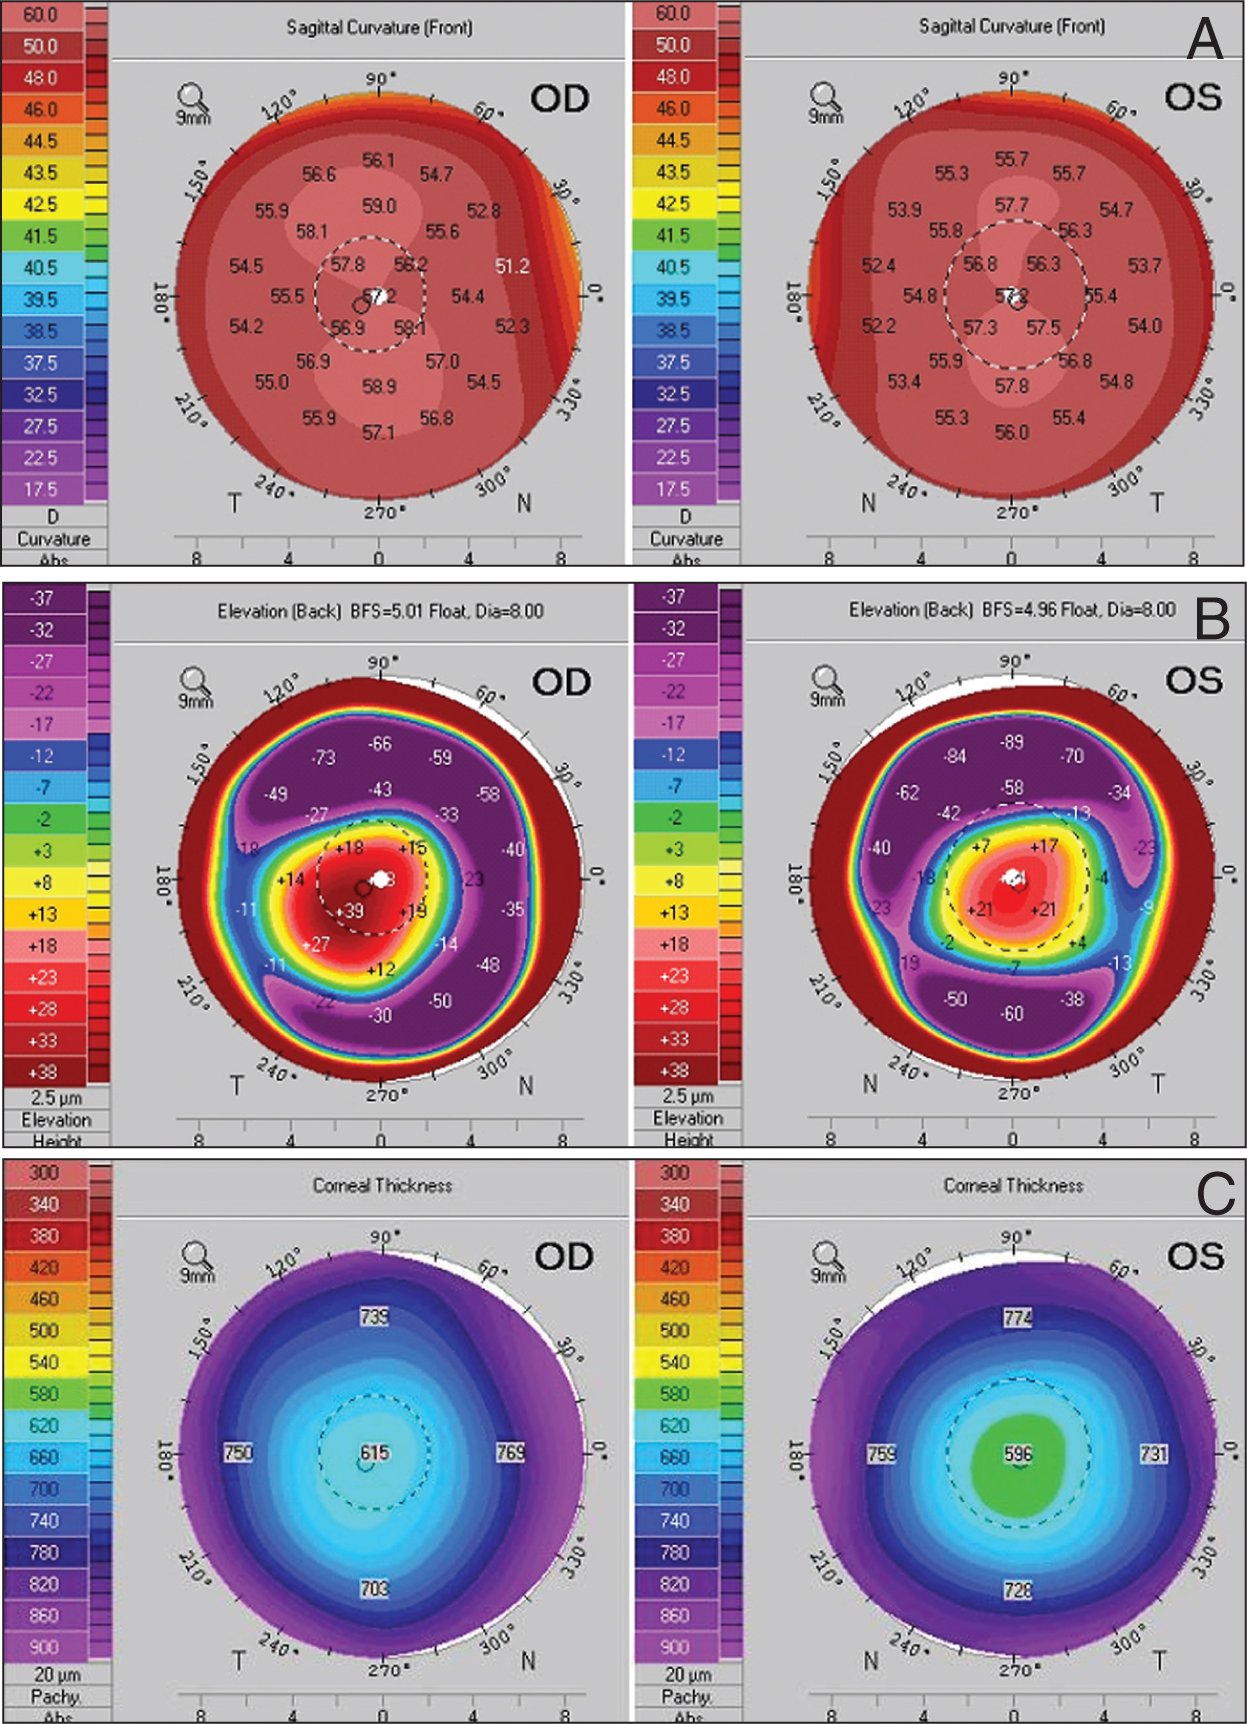 Pentacam (Pentacamhr; Oculus Optikgreräte GmbH, Wetzlar, Germany) Data of the Corneas of Both Eyes. (A) Sagittal Curvature Map Showing Diffusely Steep Corneas. (B) Posterior Elevation Map to Best Fit Sphere Showing Central Elevation. (C) Corneal Thickness Map Demonstrating Thick Corneas.